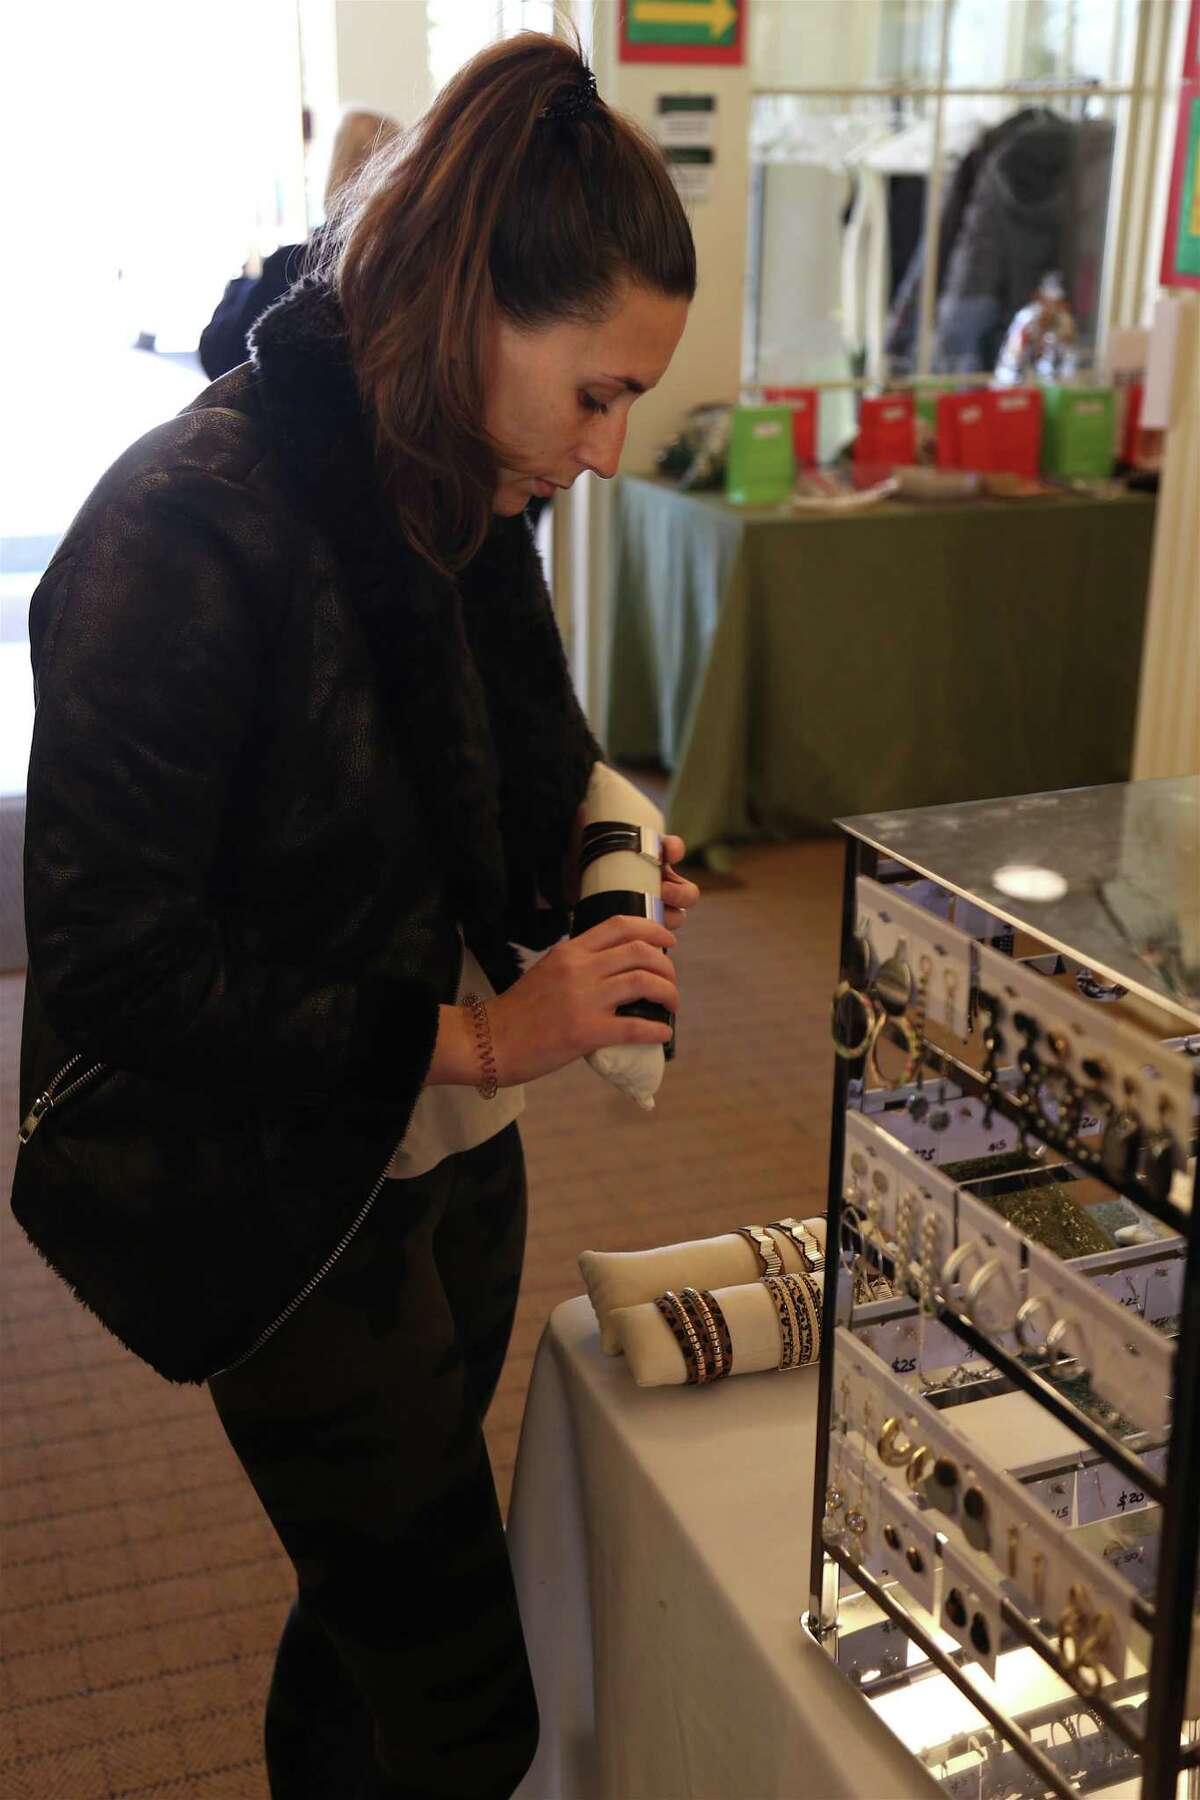 Brittany Santella of Fairfield looks at jewelry at the Holiday Pop-Up Market at the Fairfield Museum and History Center on Saturday, Nov. 23, 2019, in Fairfield, Conn.